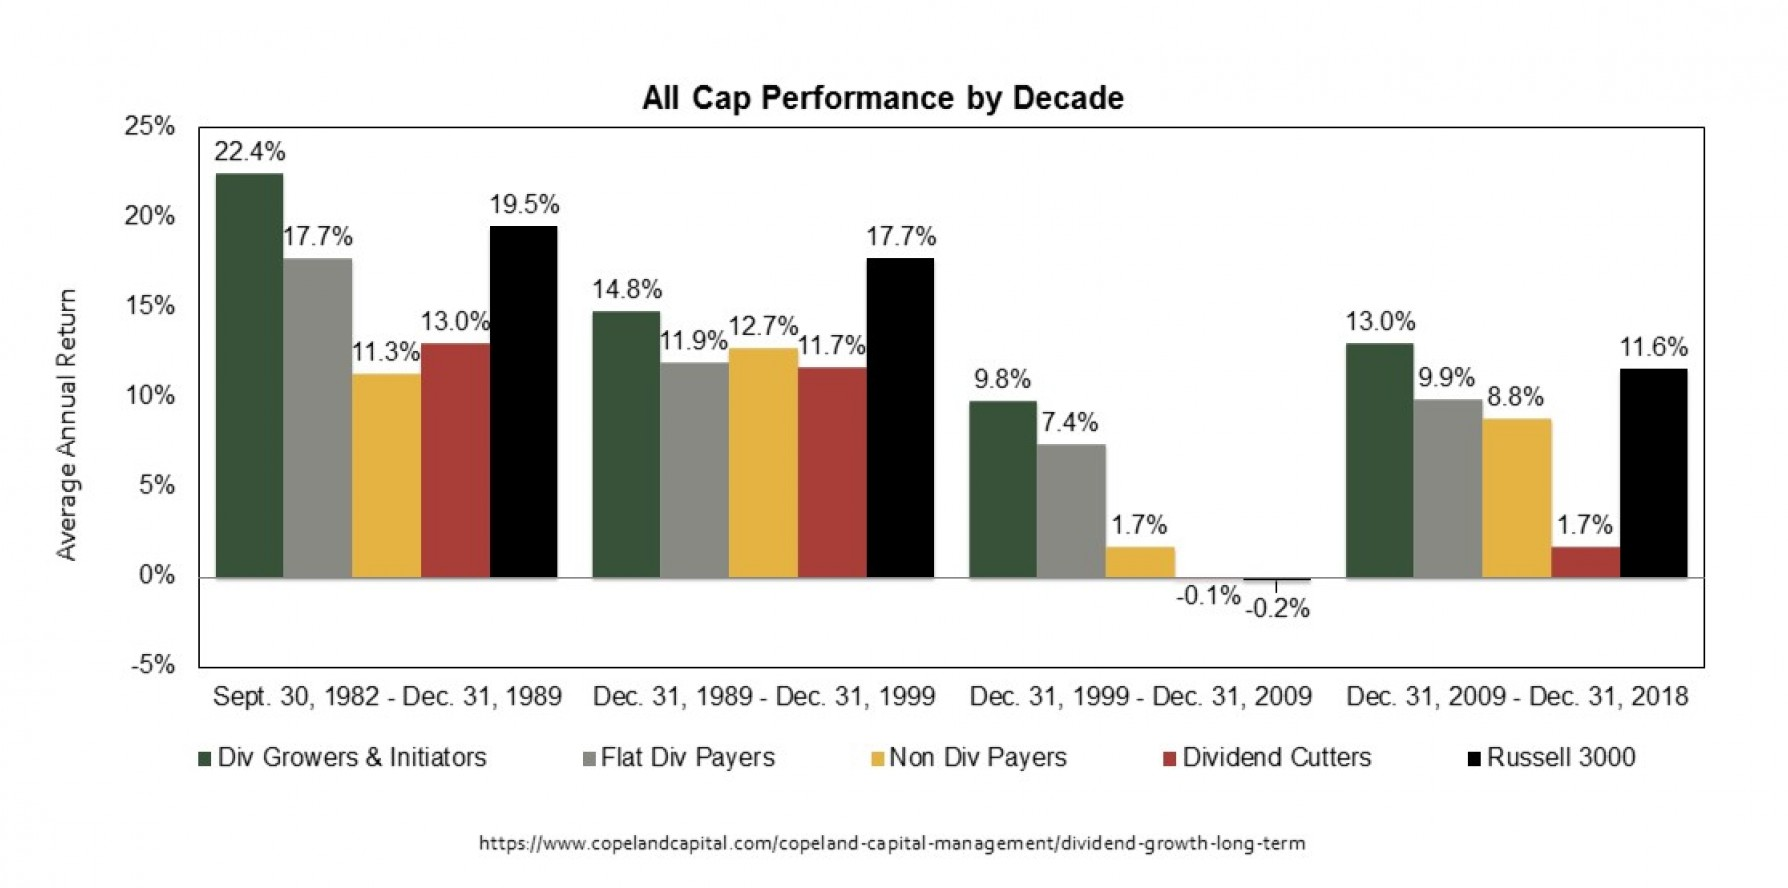 Domestic All Cap Stock Performance by Decade